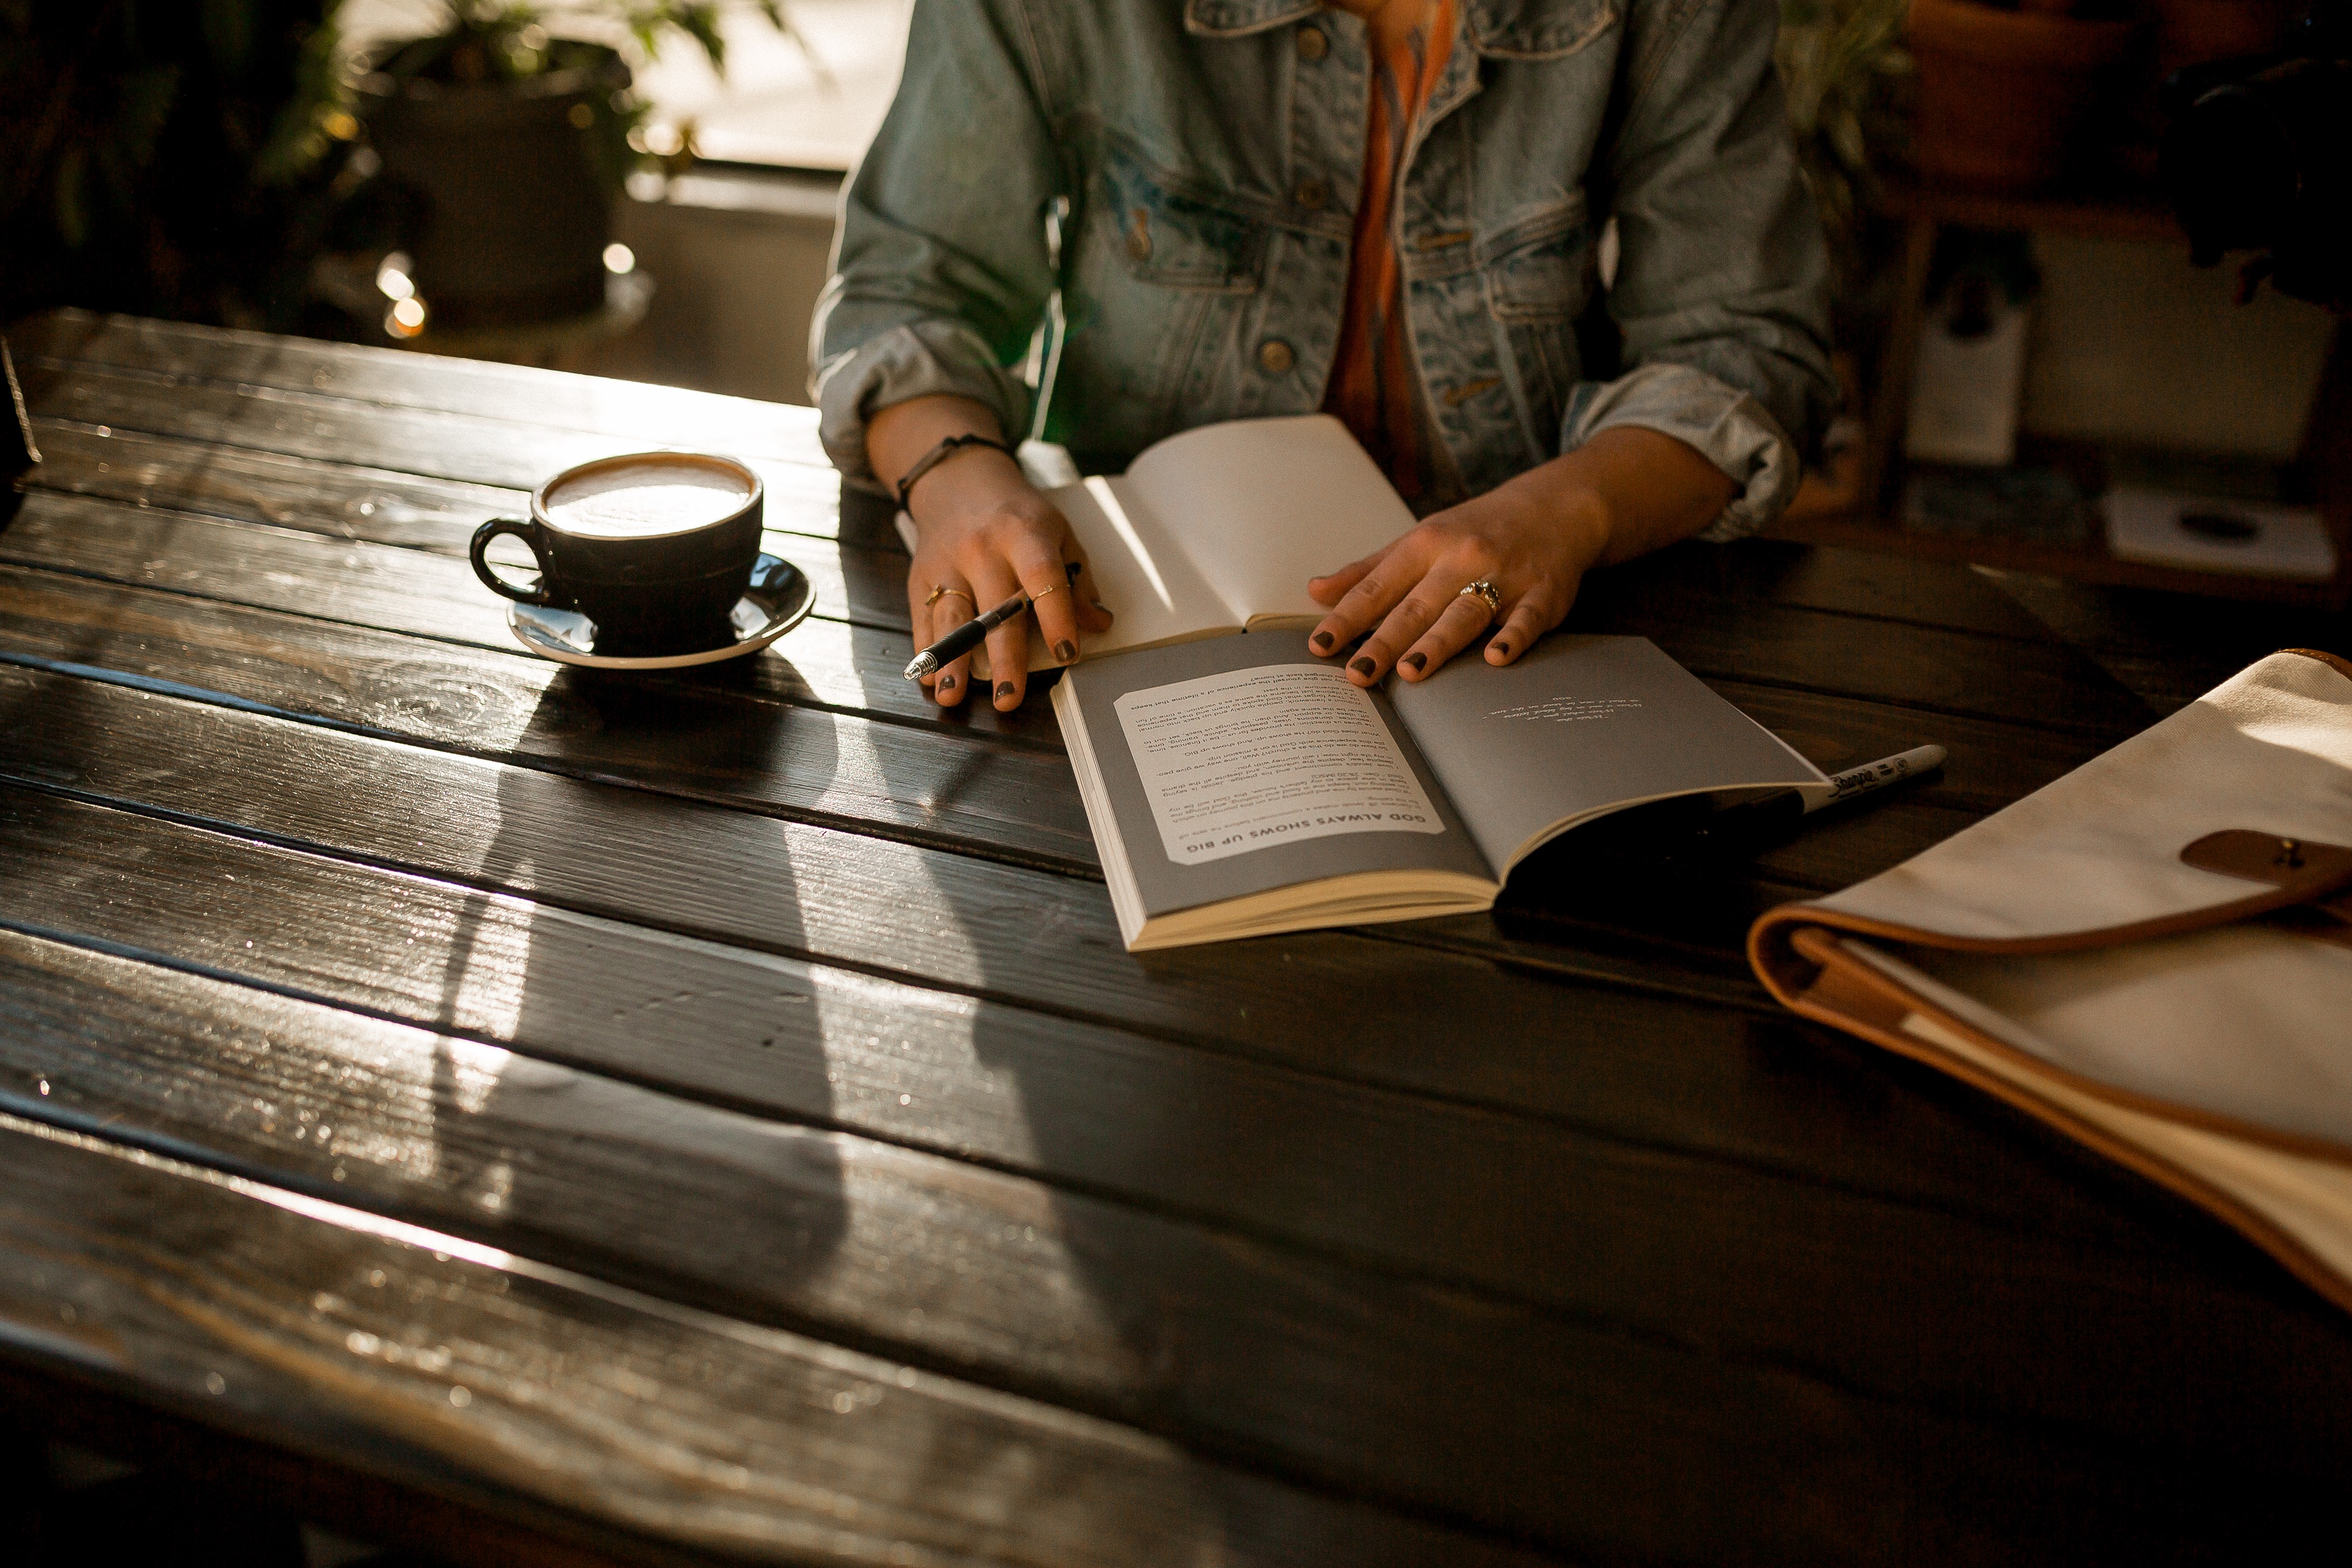 Woman with coffee and journals at table